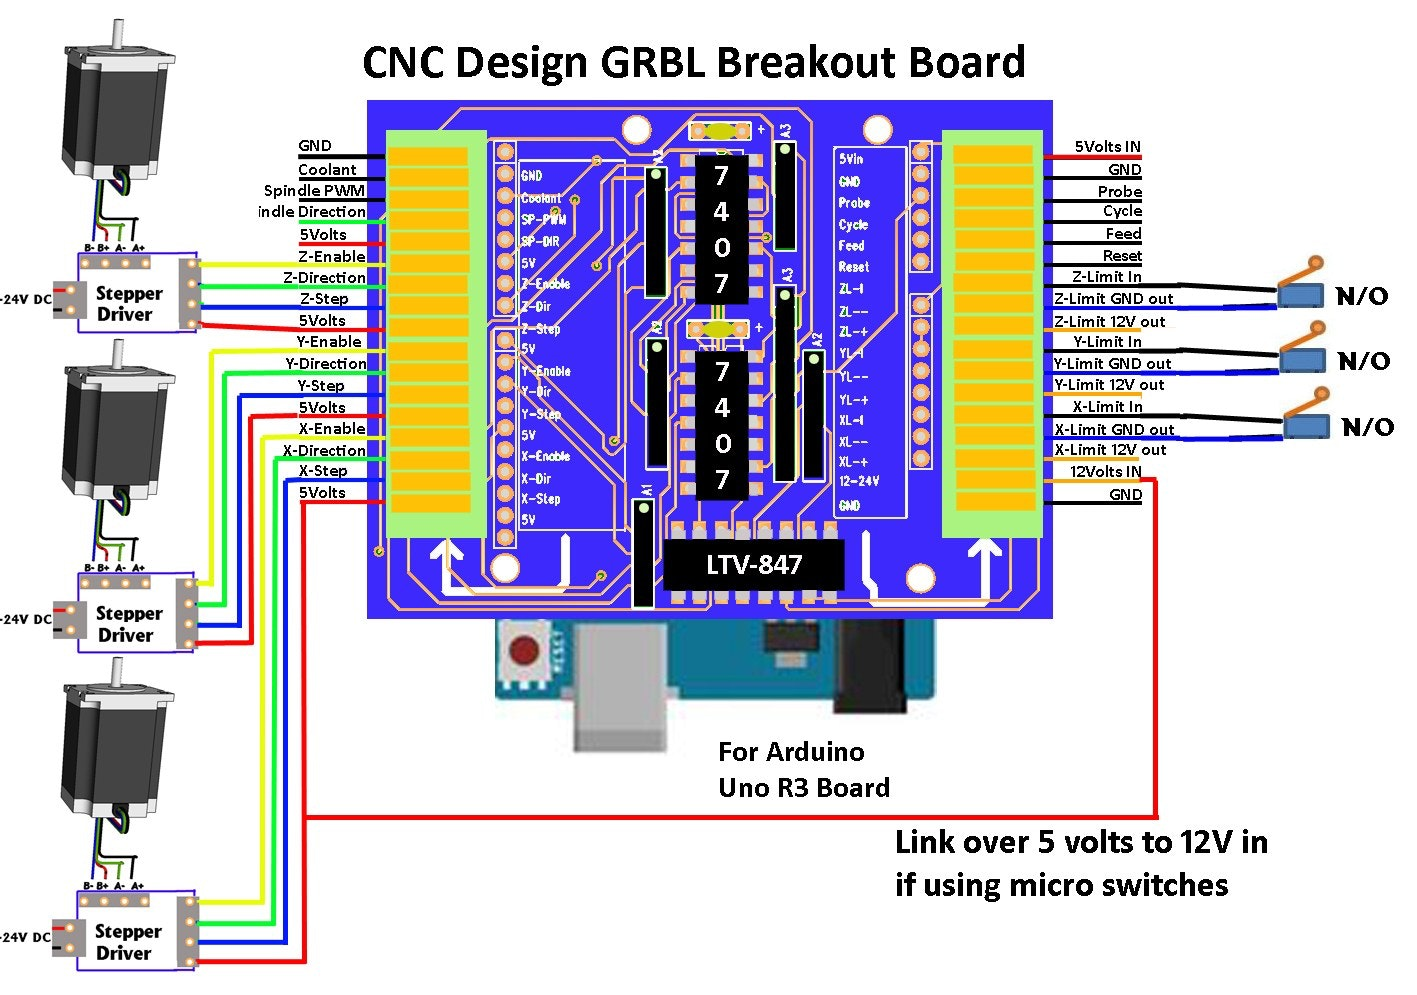 grbl breakout board shield arduino uno hackster io Hunter Fan Switch Wiring Diagram below shows a typical setup with three stepper motors drivers connected and micro switches on the limit switches you have to link 5 volts over into the